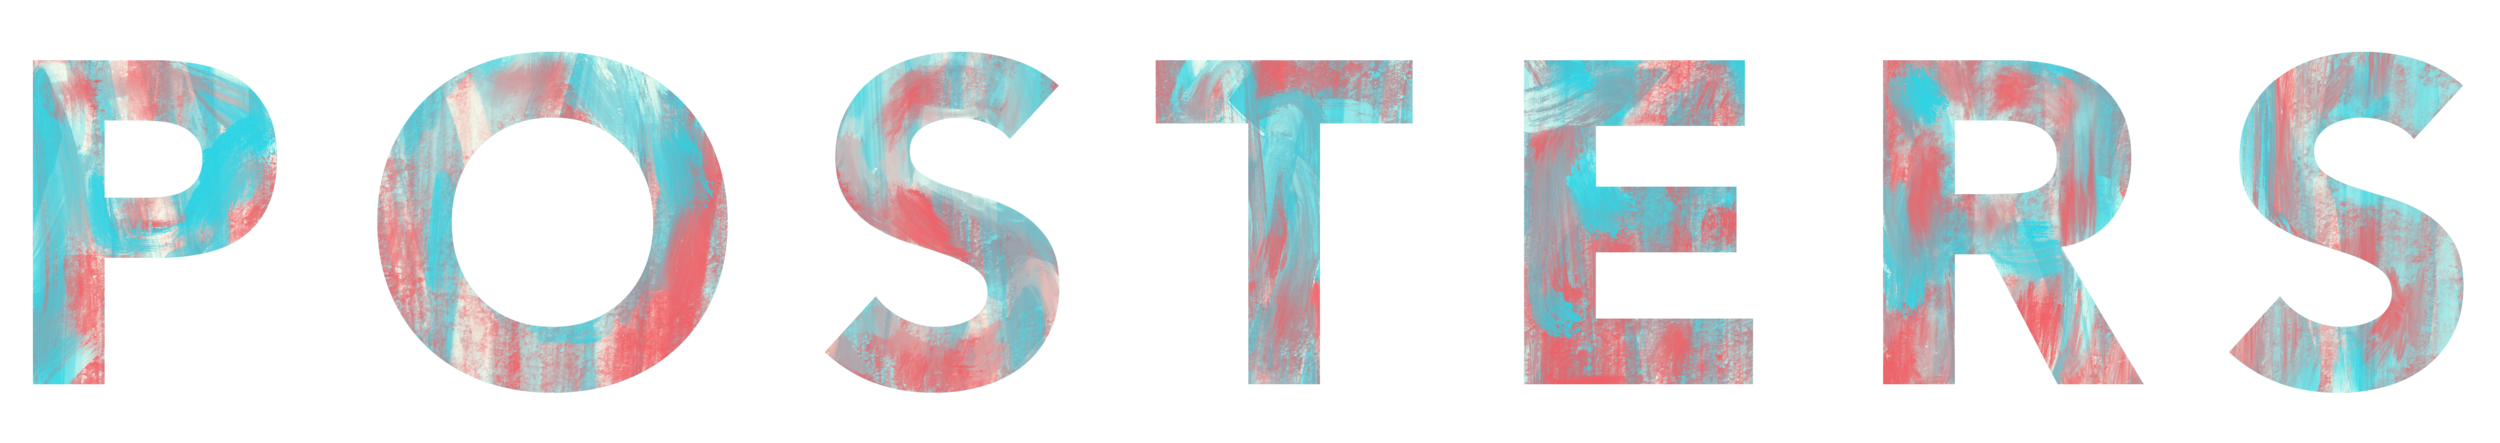 Posters_Painted_Banner.png